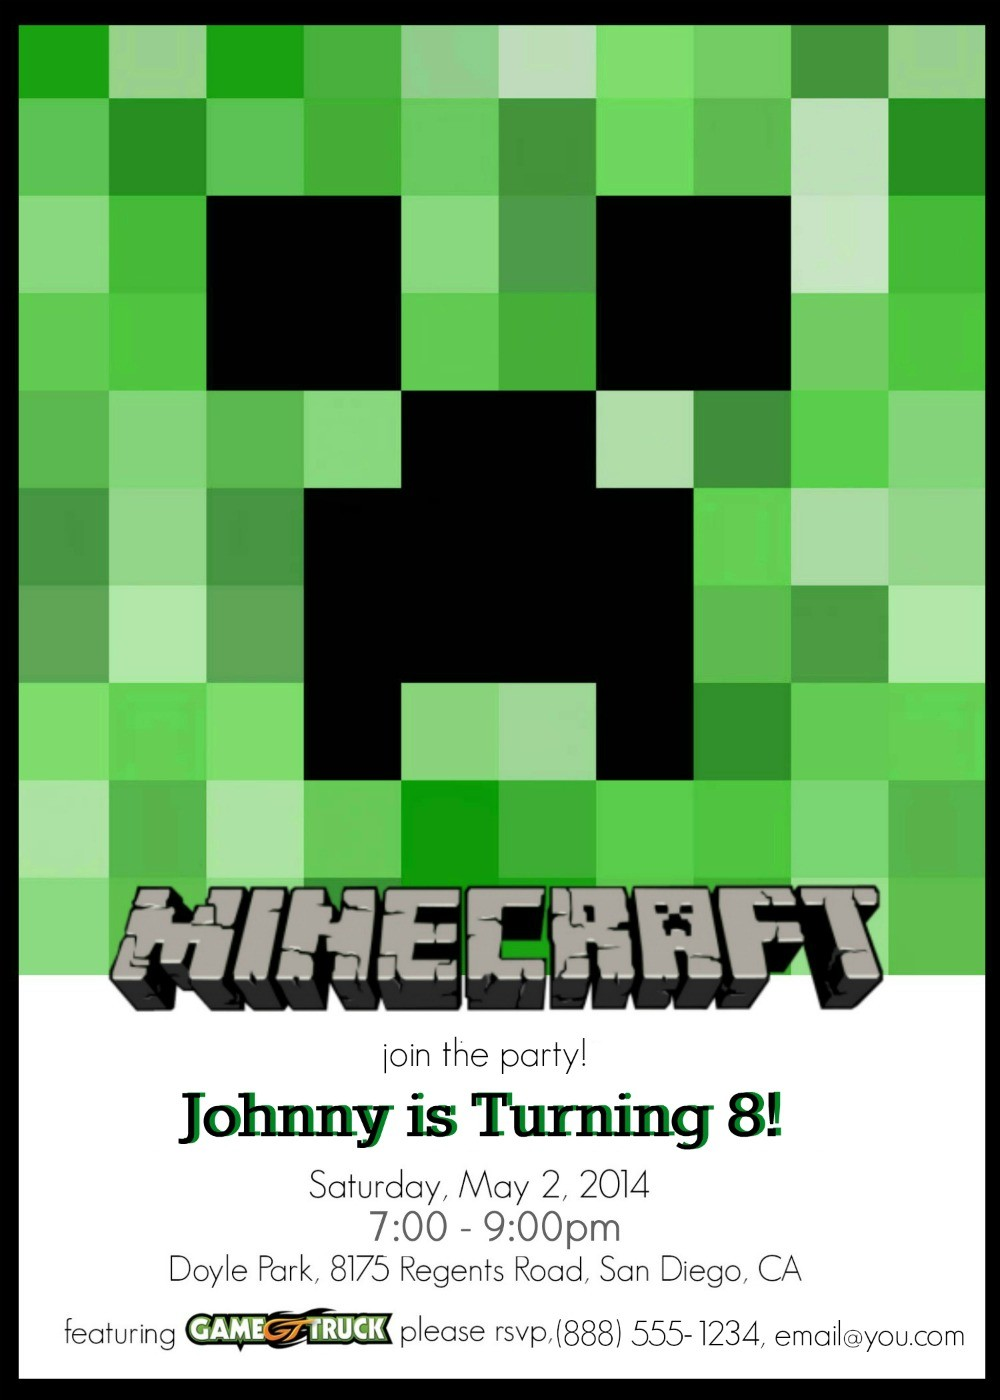 Sample of FREE printable Minecraft party invitations - You can make these custom invitations for a Minecraft birthday party right at home!